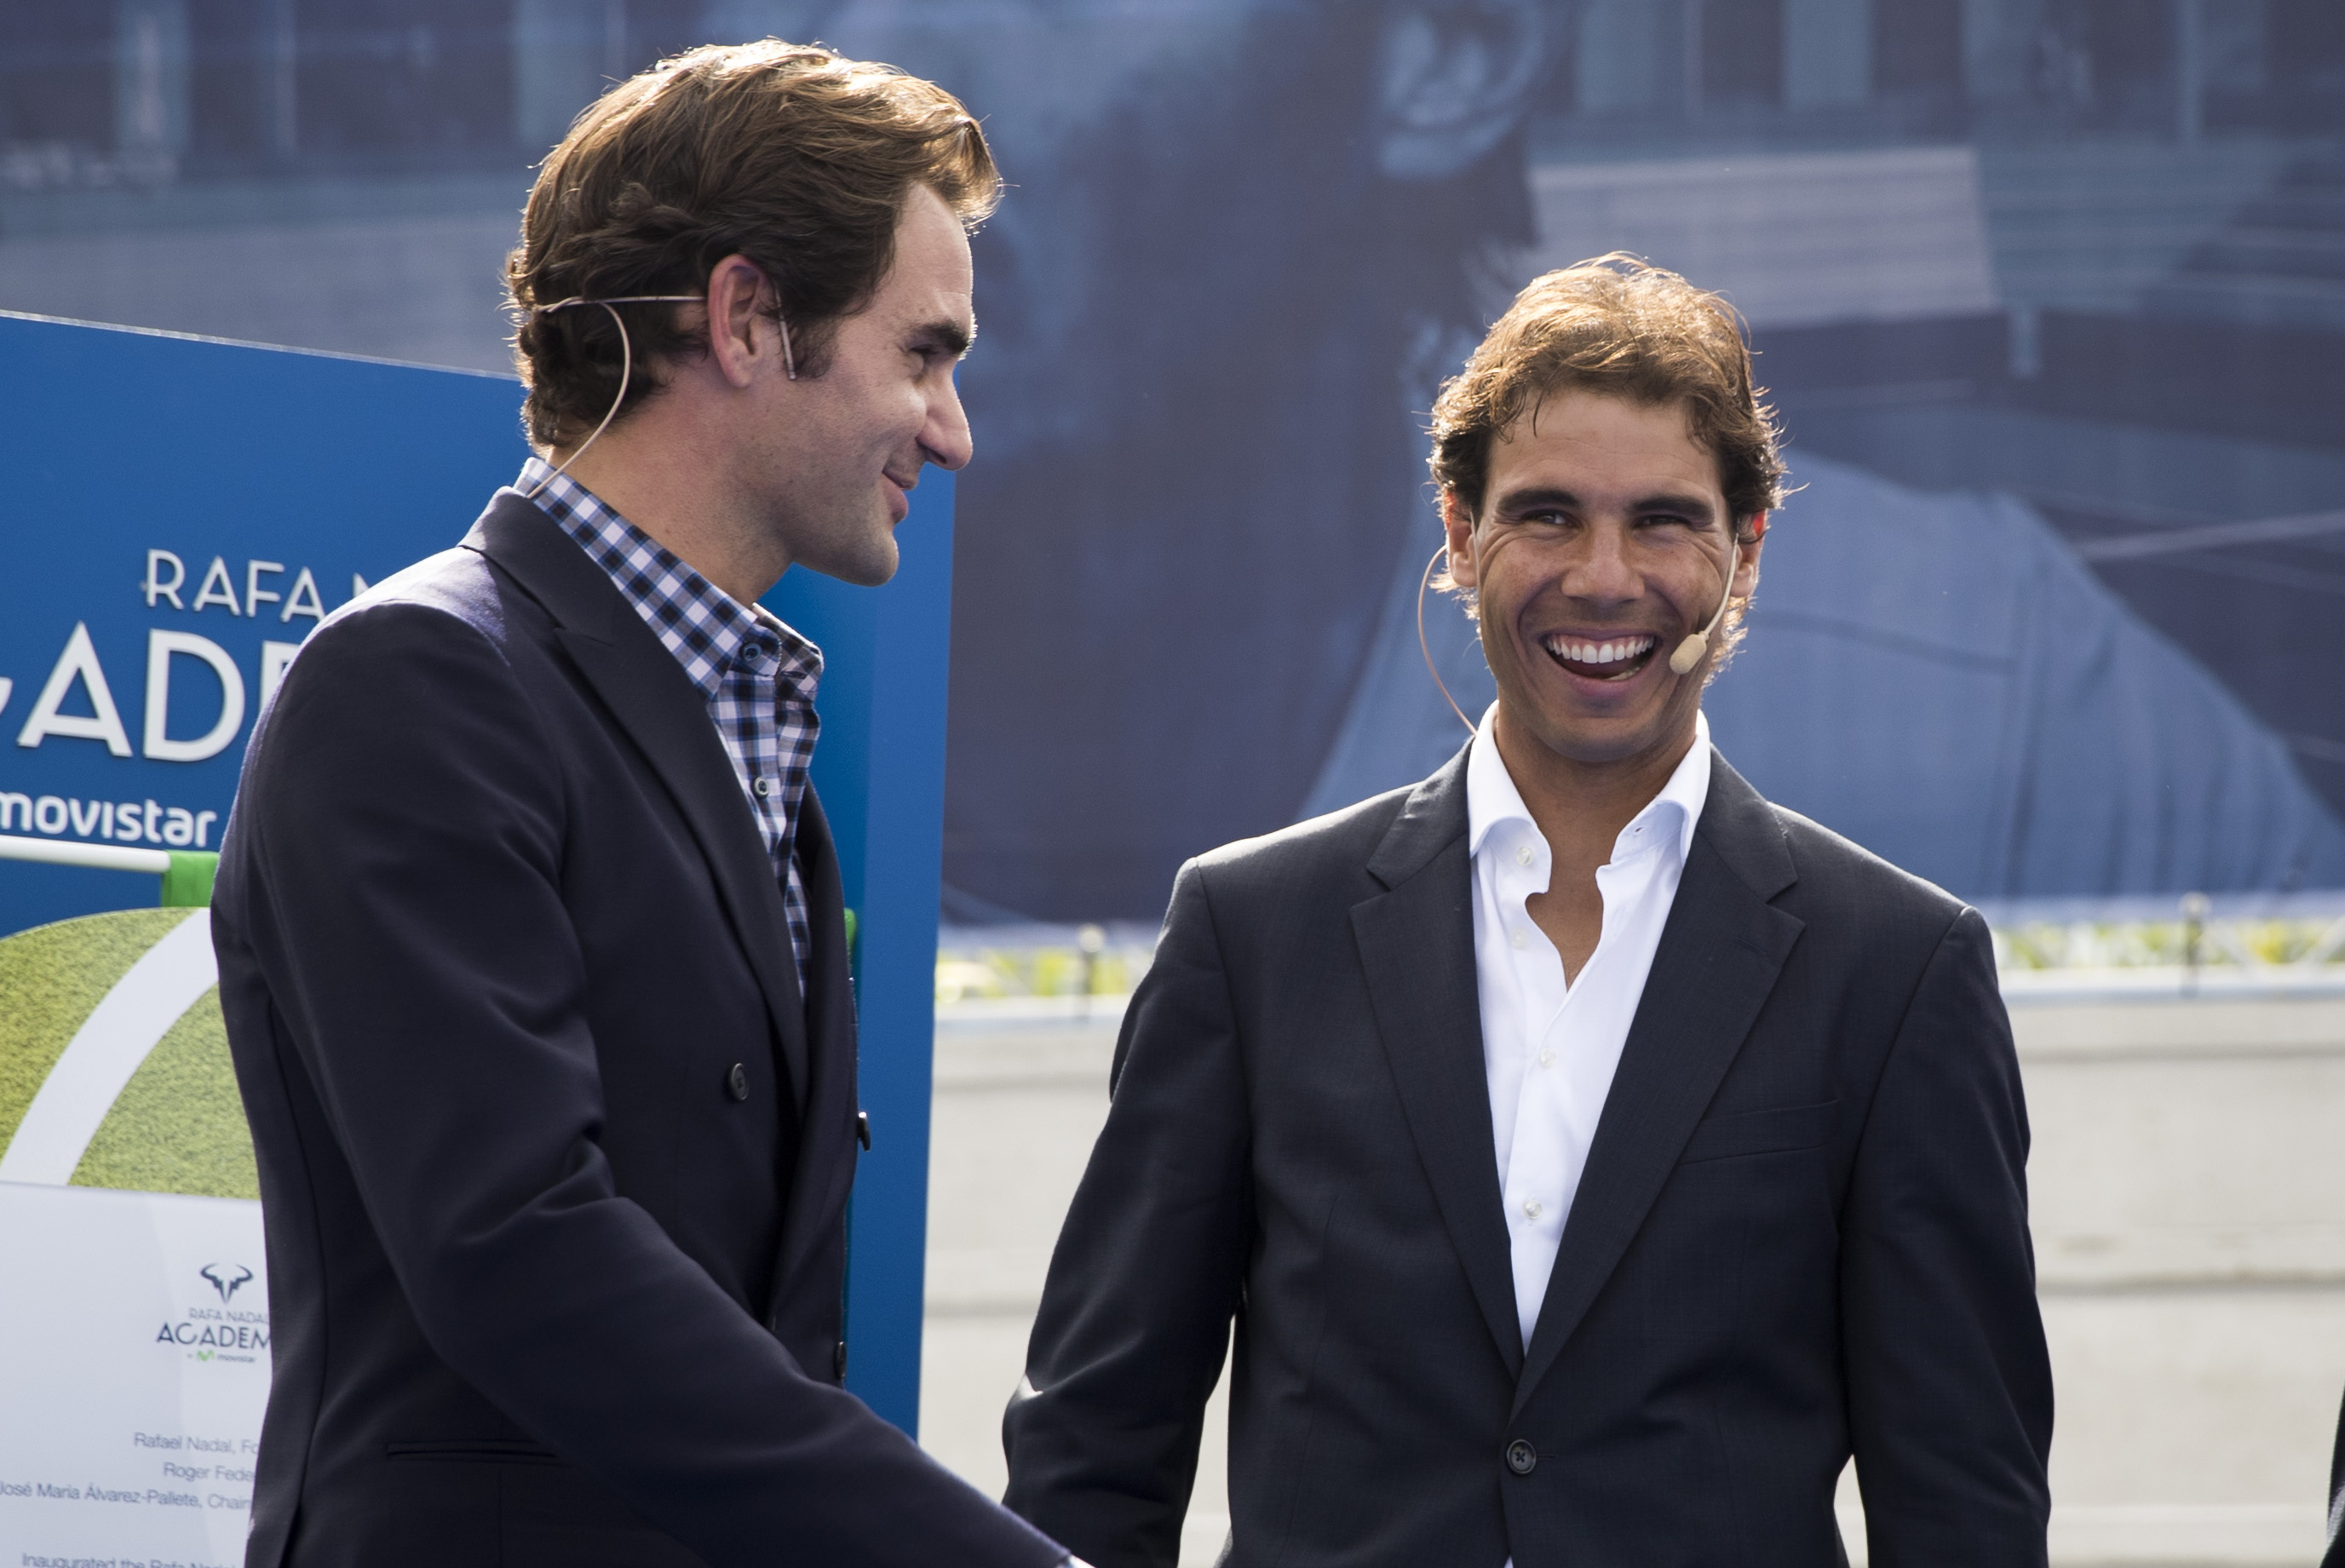 How Roger Federer And Rafael Nadal Built Tennis Friendliest Rivalry Bleacher Report Latest News Videos And Highlights